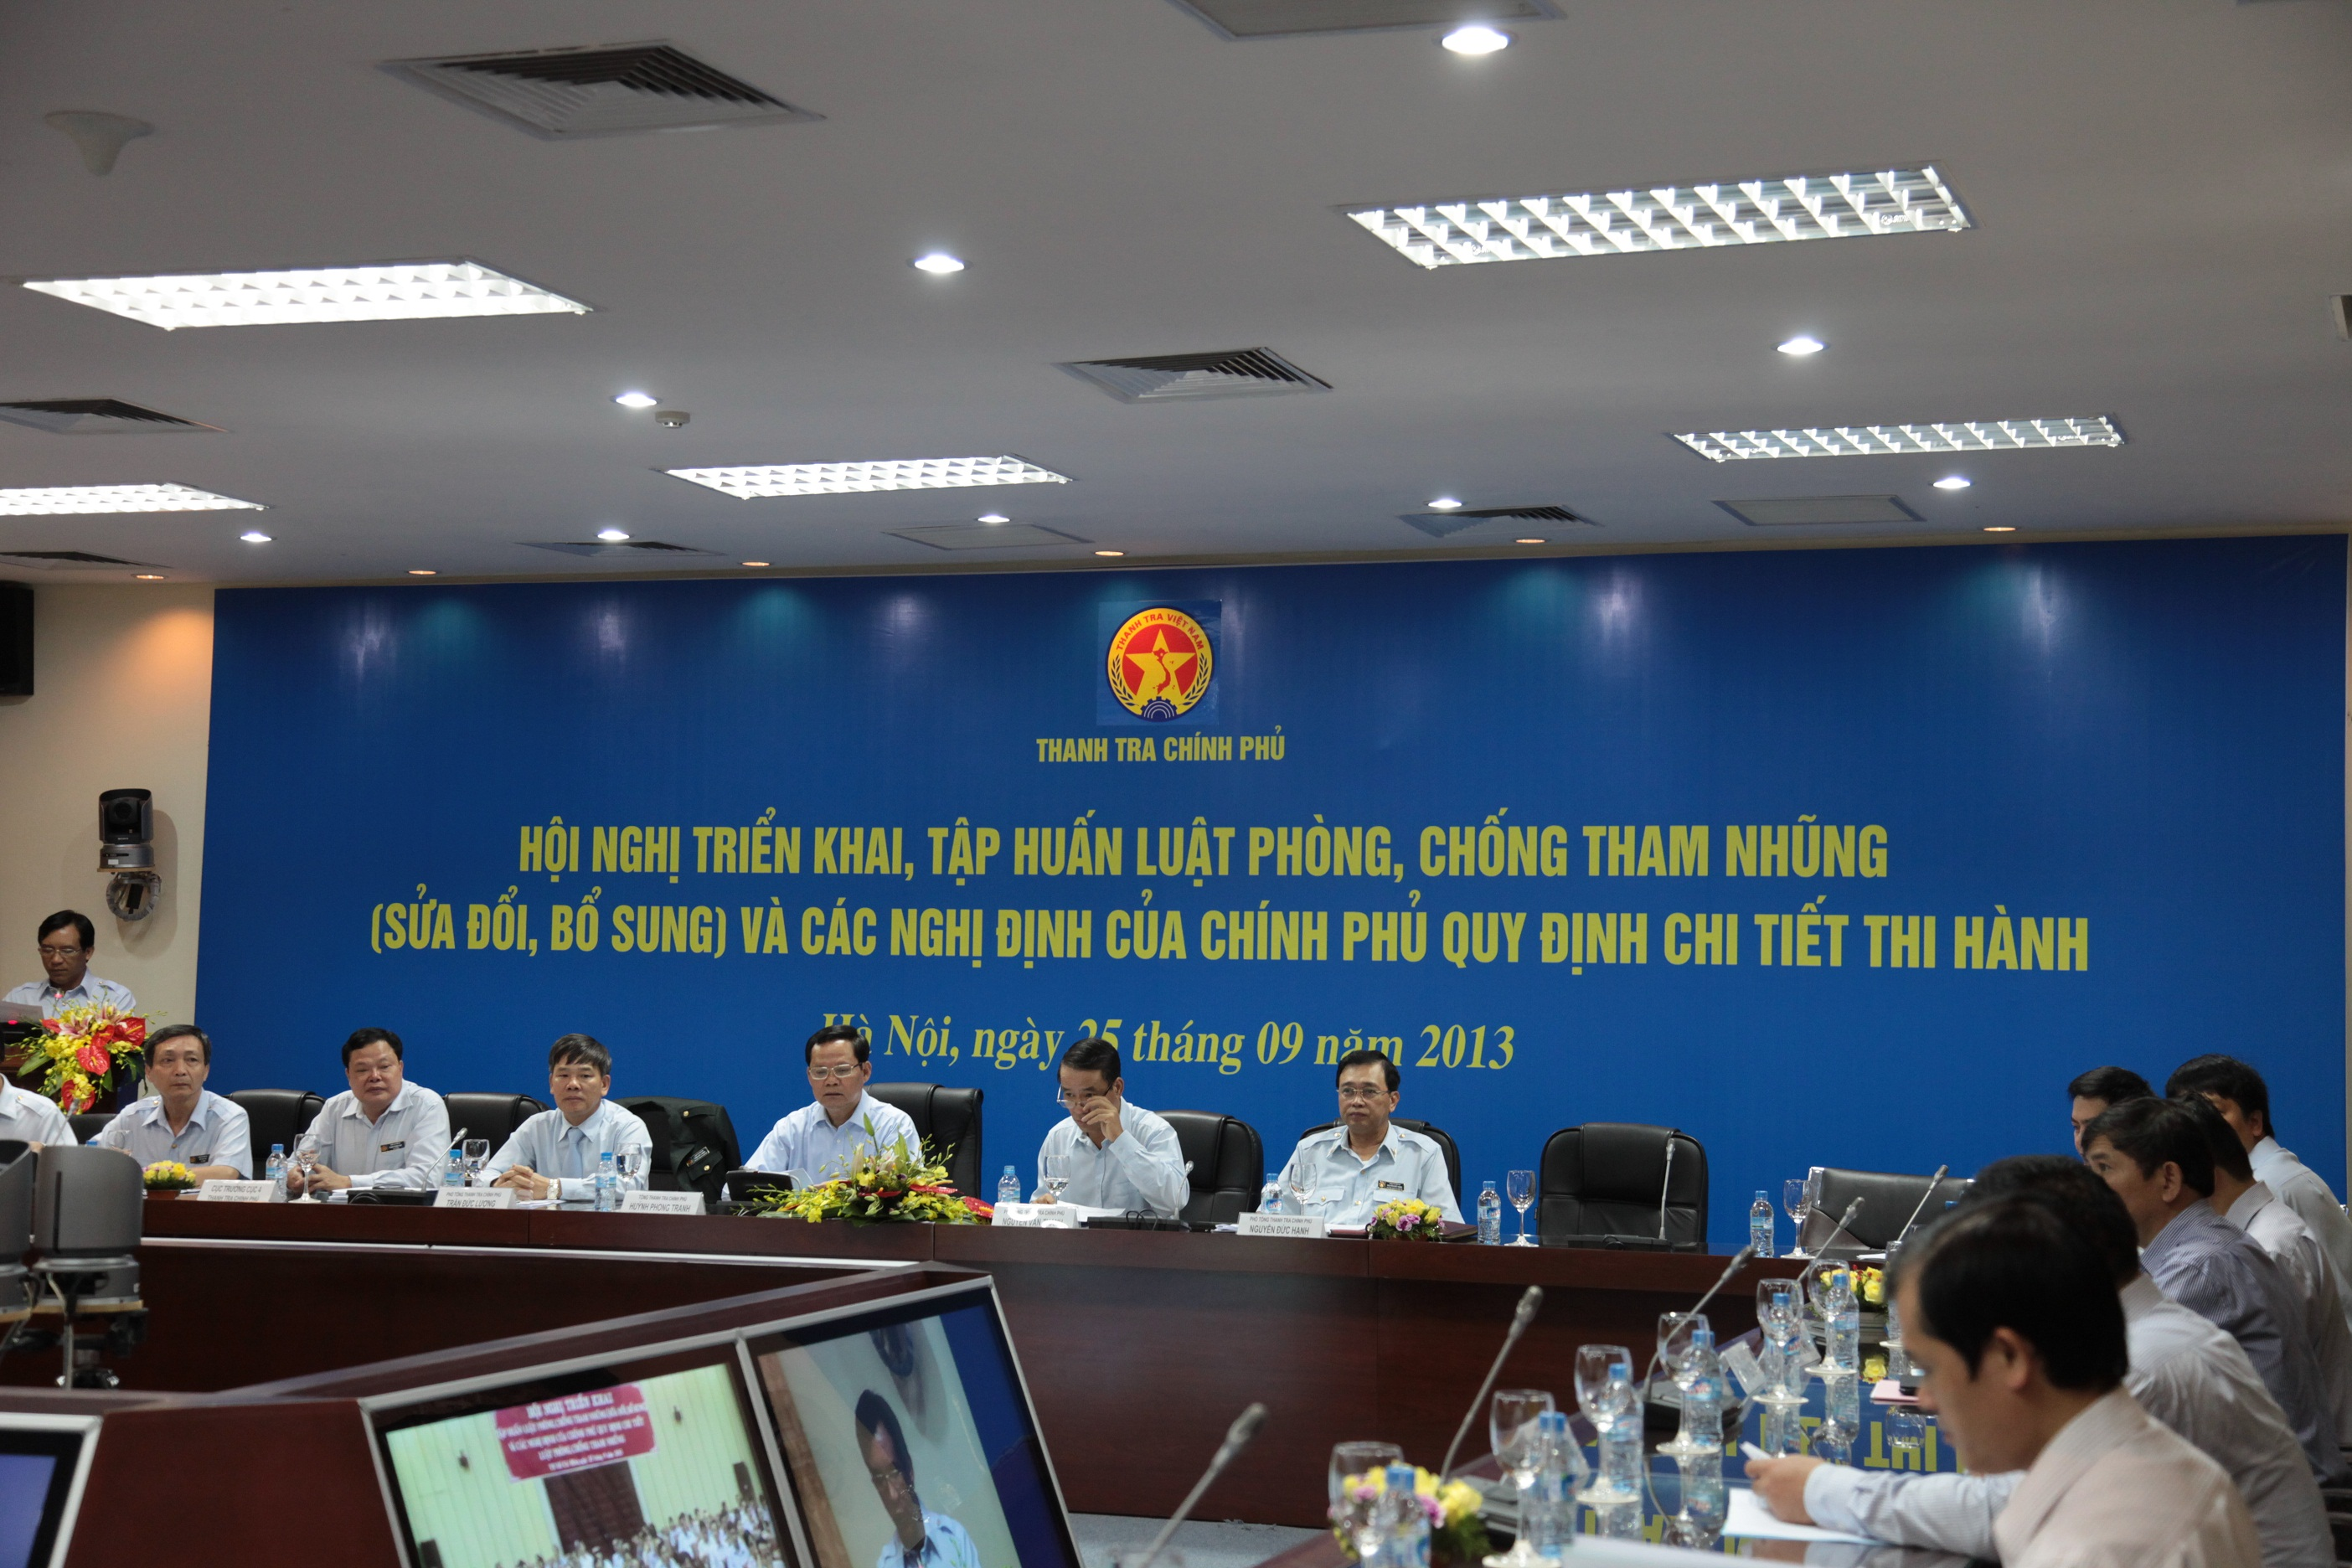 [OP-ED] To eliminate corruption, make Vietnam's budget a matter of public record